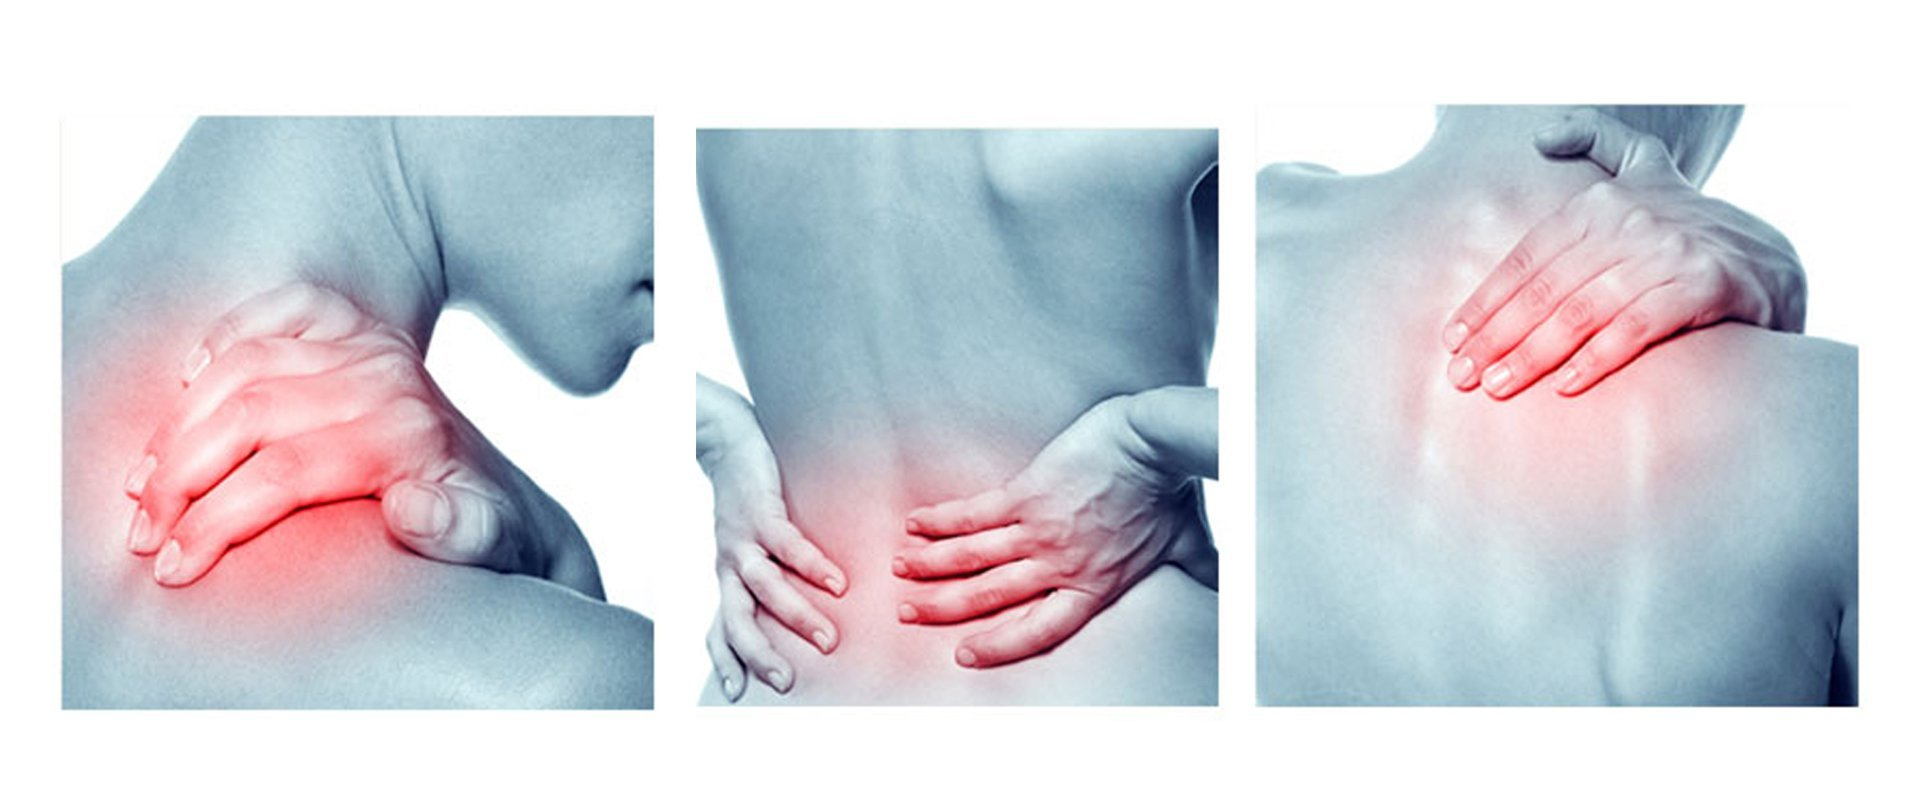 SPECIAL TREATMENT APPROACHES TO BACK AND NECK PAIN